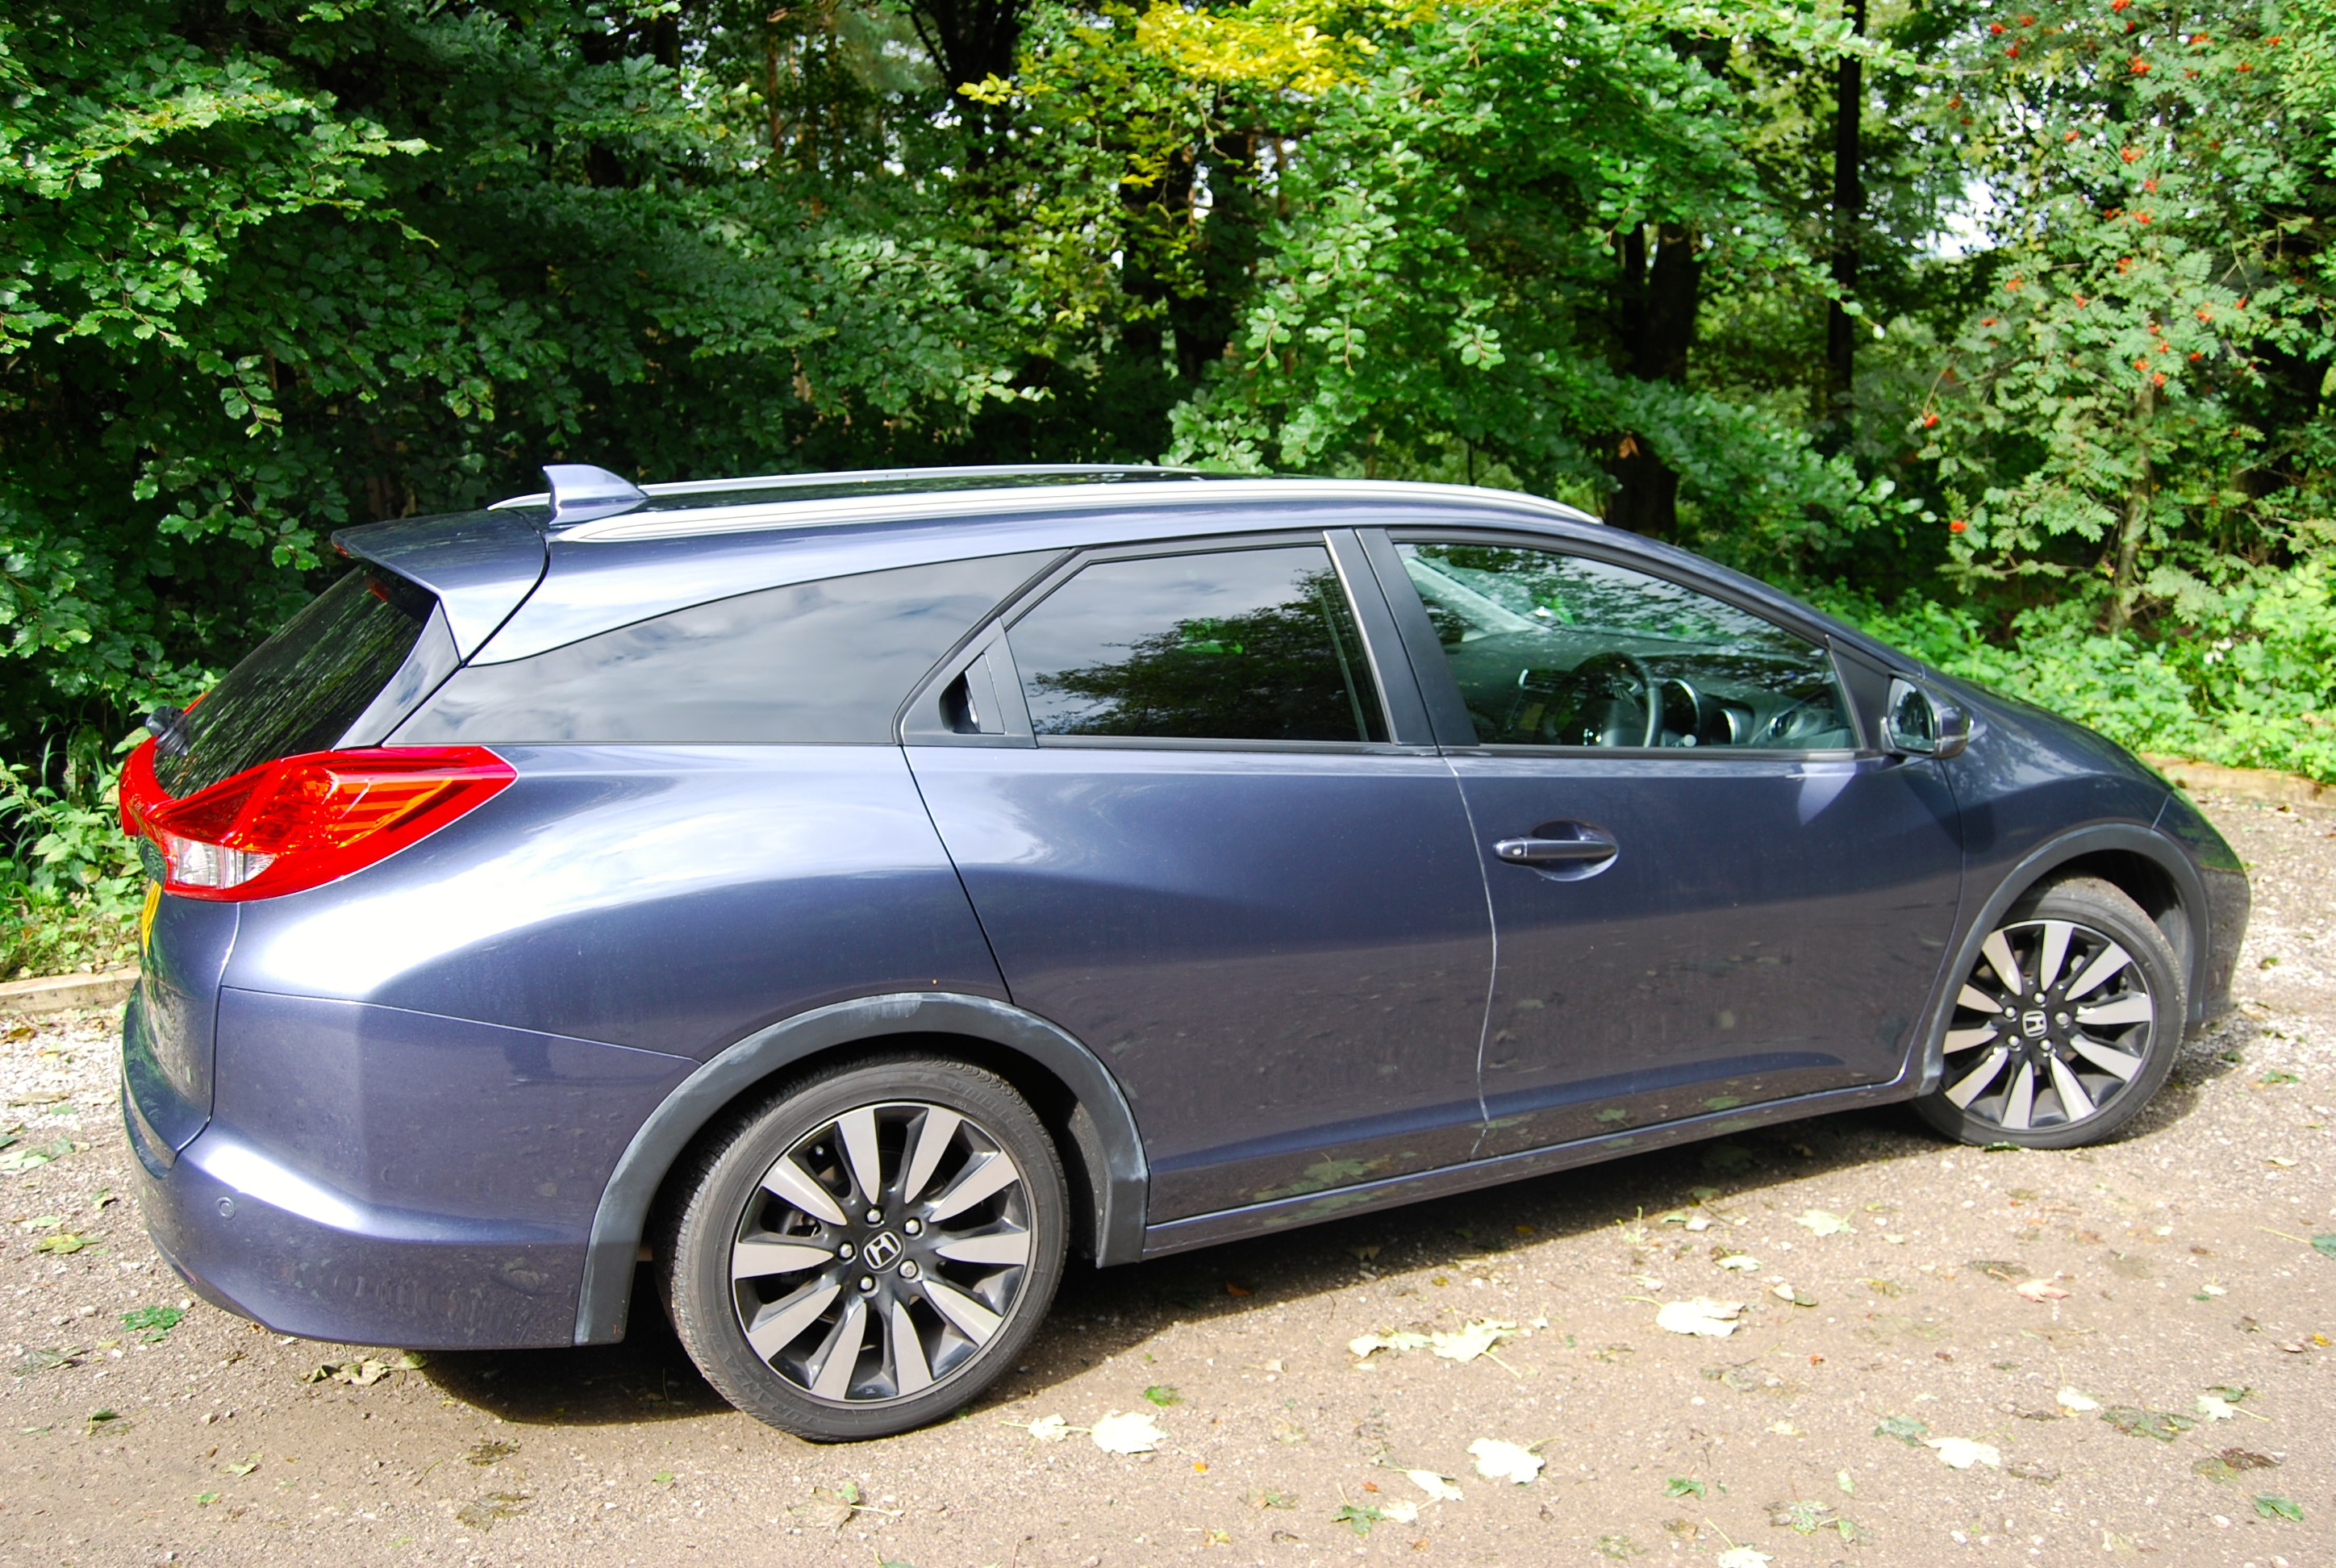 honda civic tourer 1 8 i vtec driven and reviewed. Black Bedroom Furniture Sets. Home Design Ideas